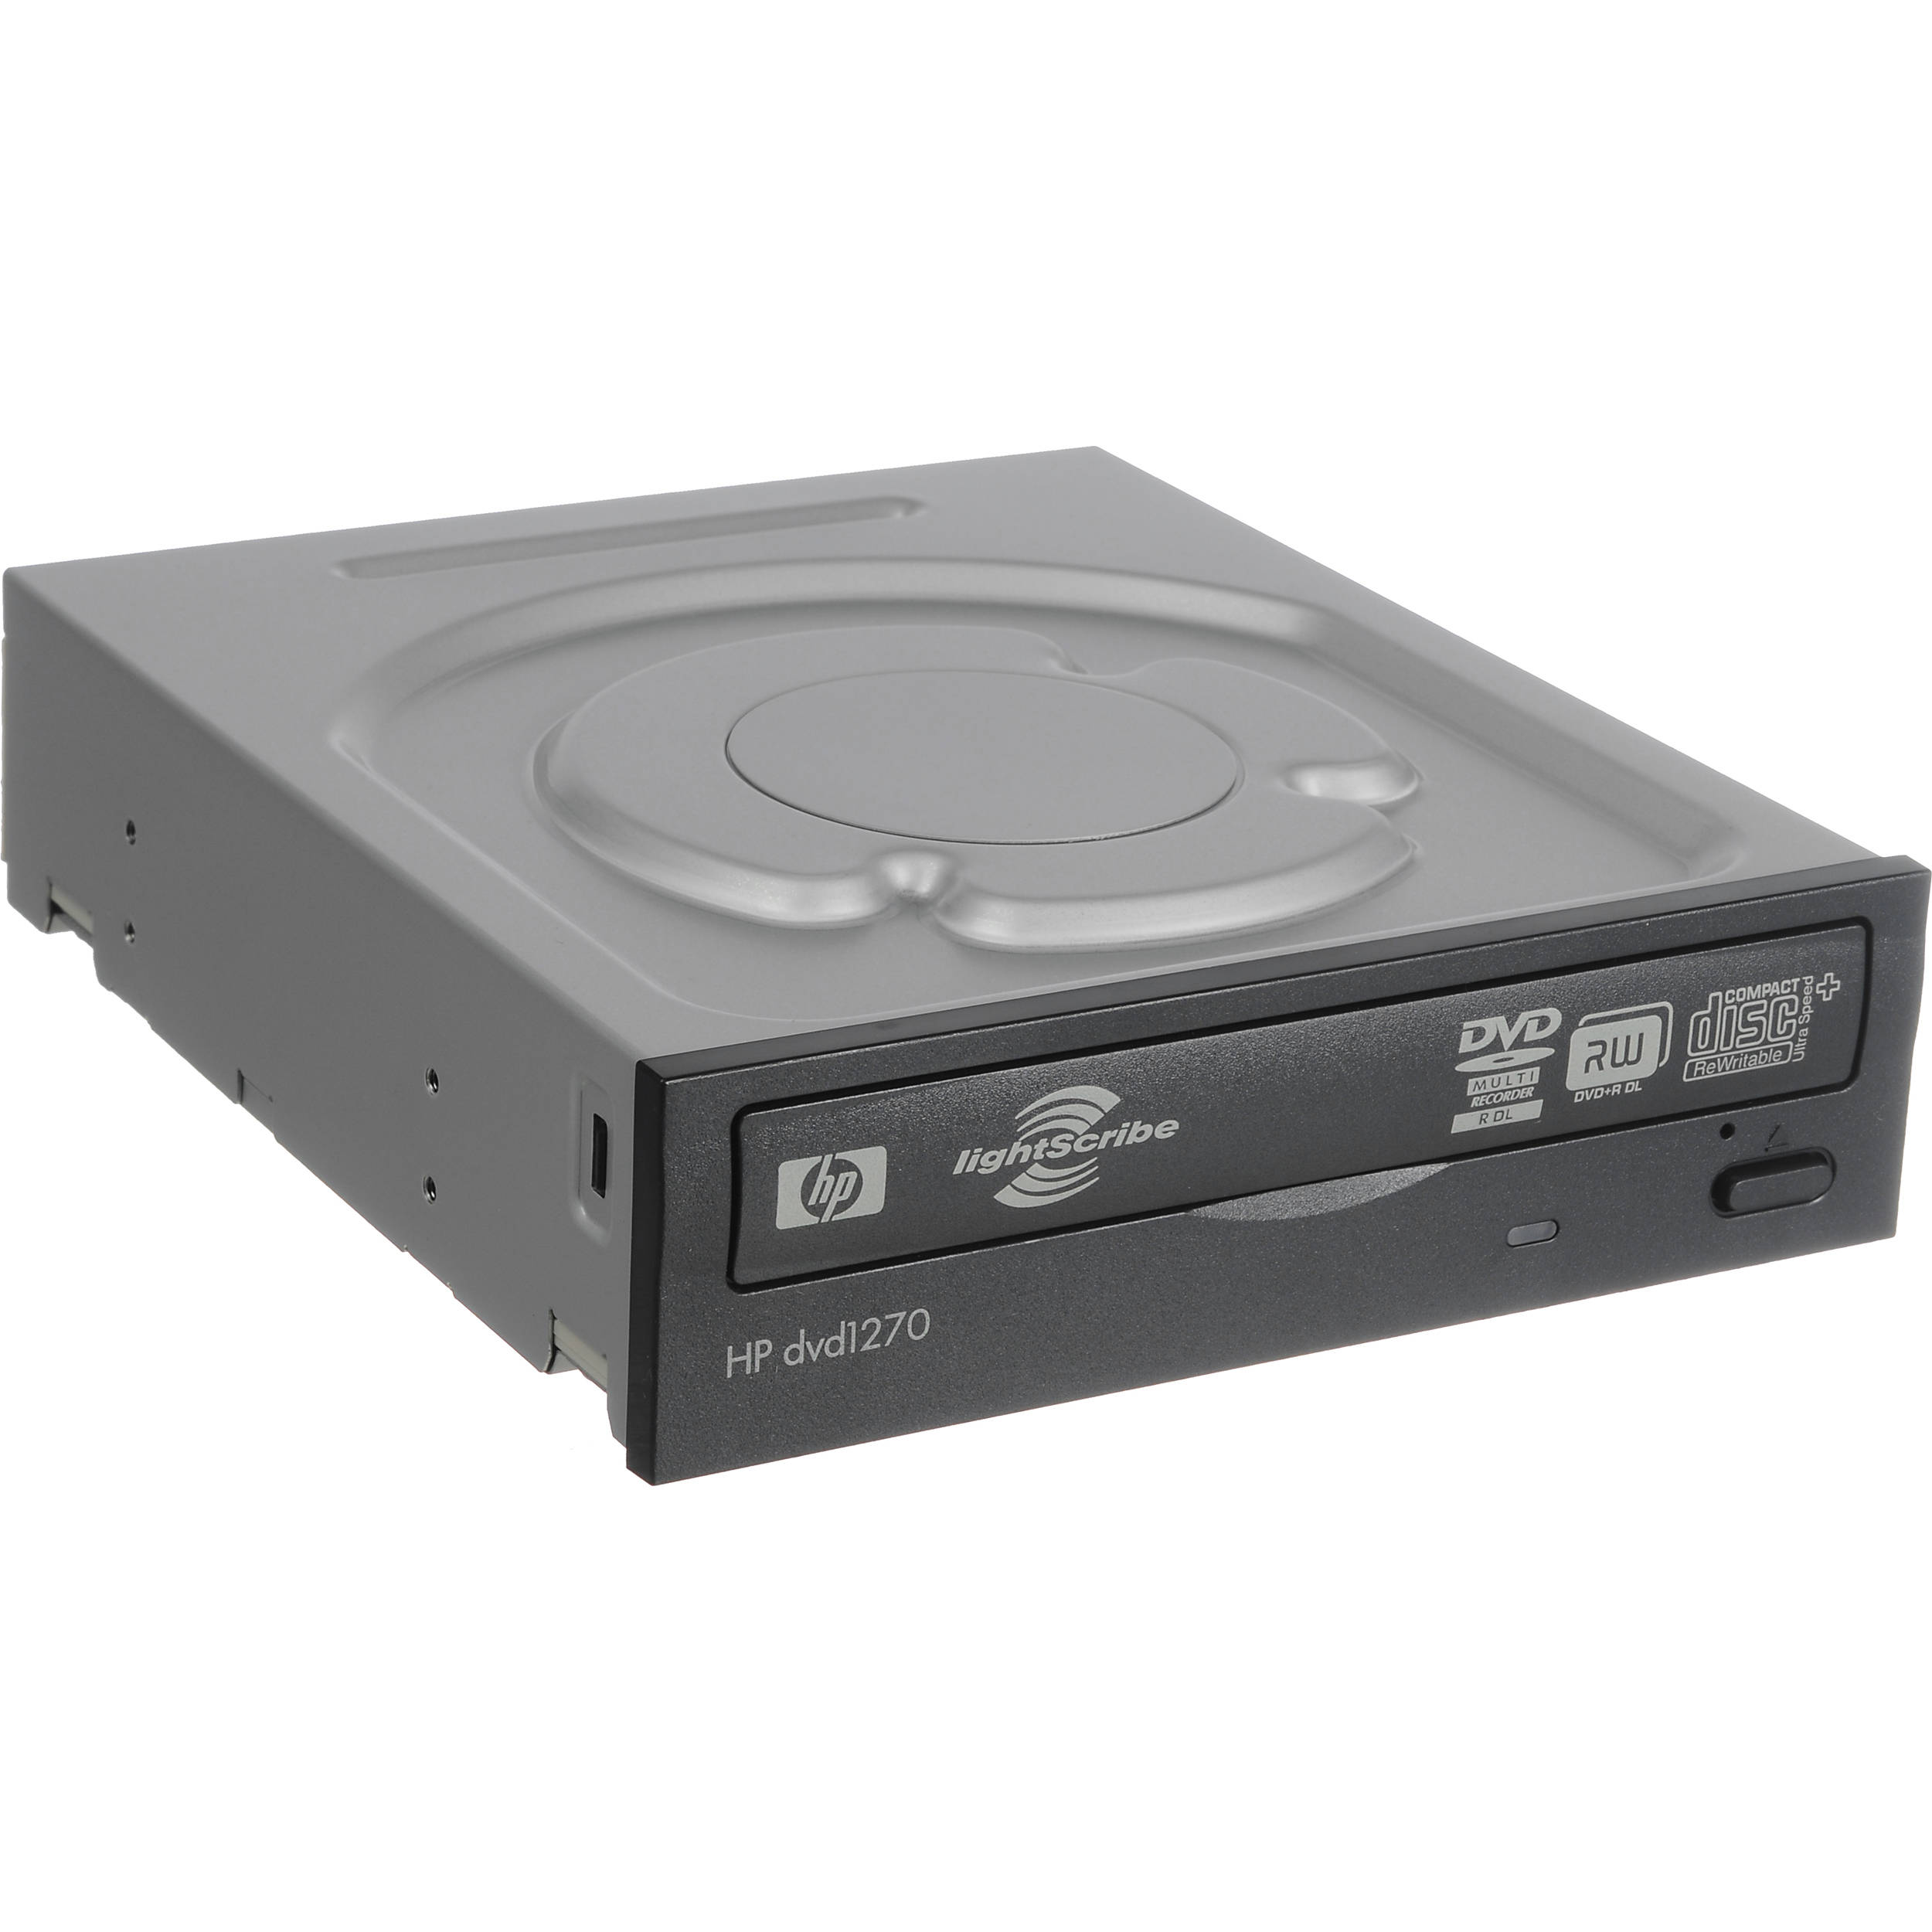 lightscribe external dvd burner reviews